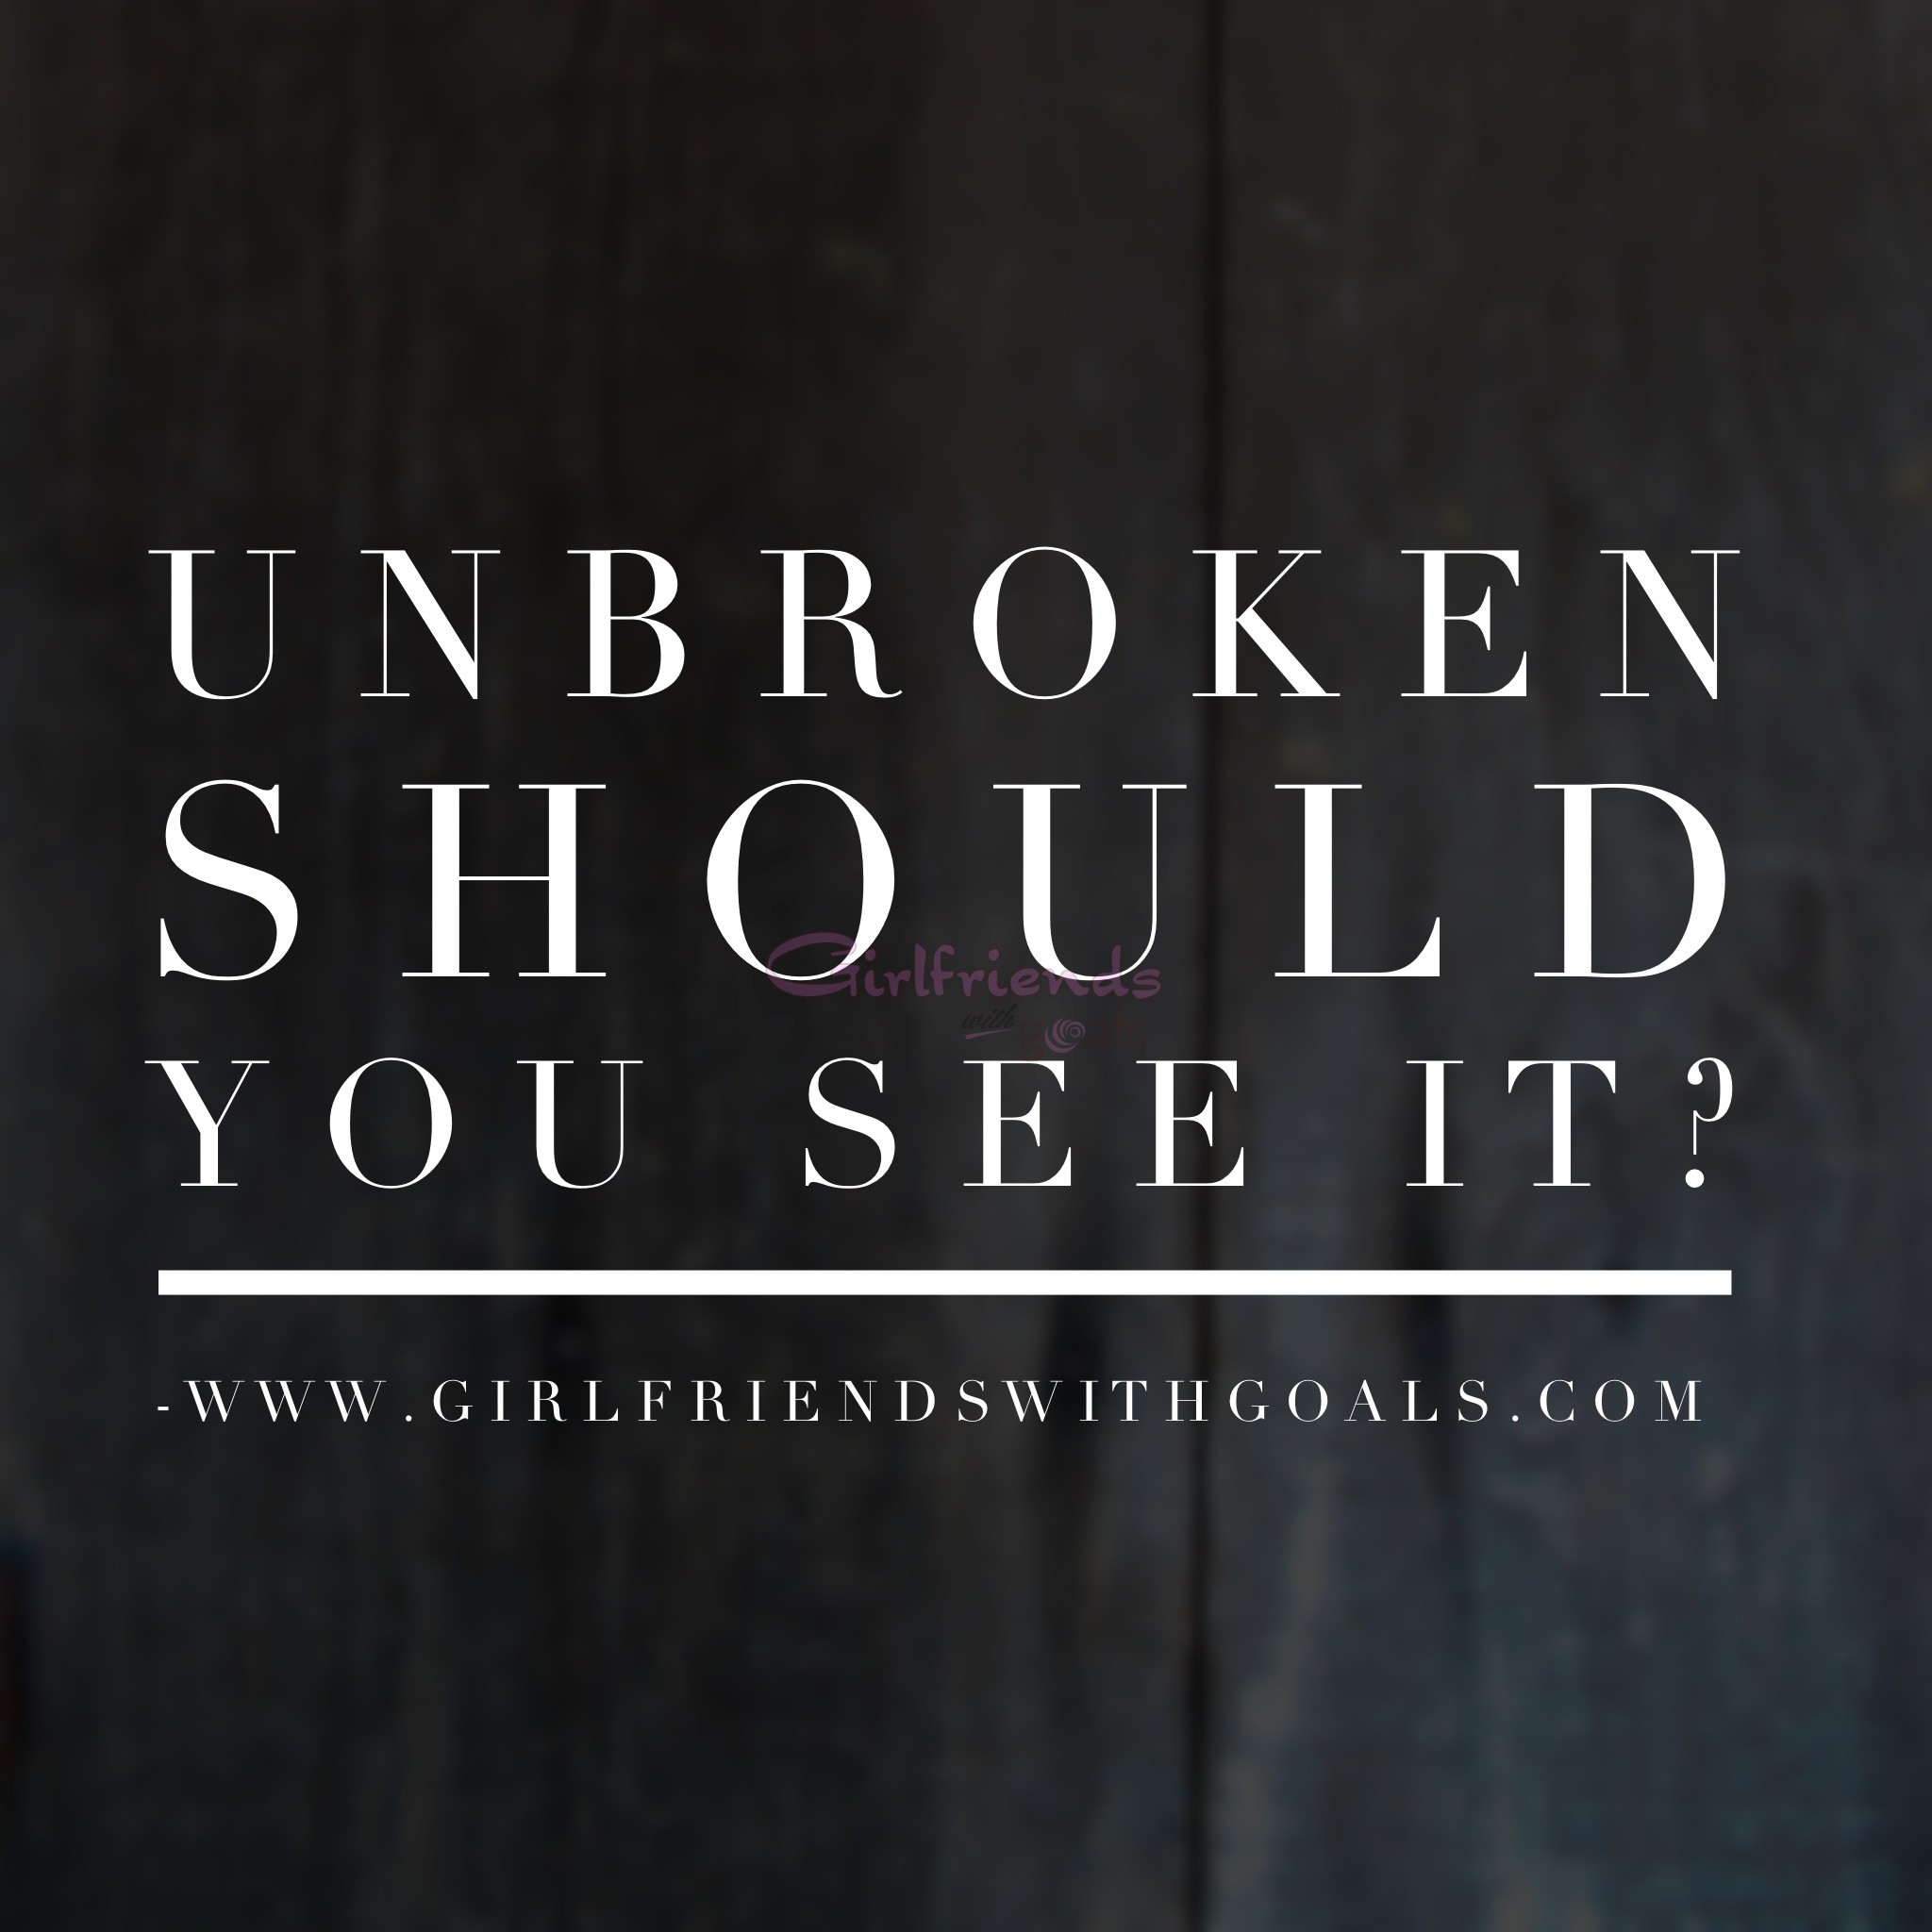 Unbroken Quotes Unbroken Should You Go See Itmy Answer Is Going To Surprise You